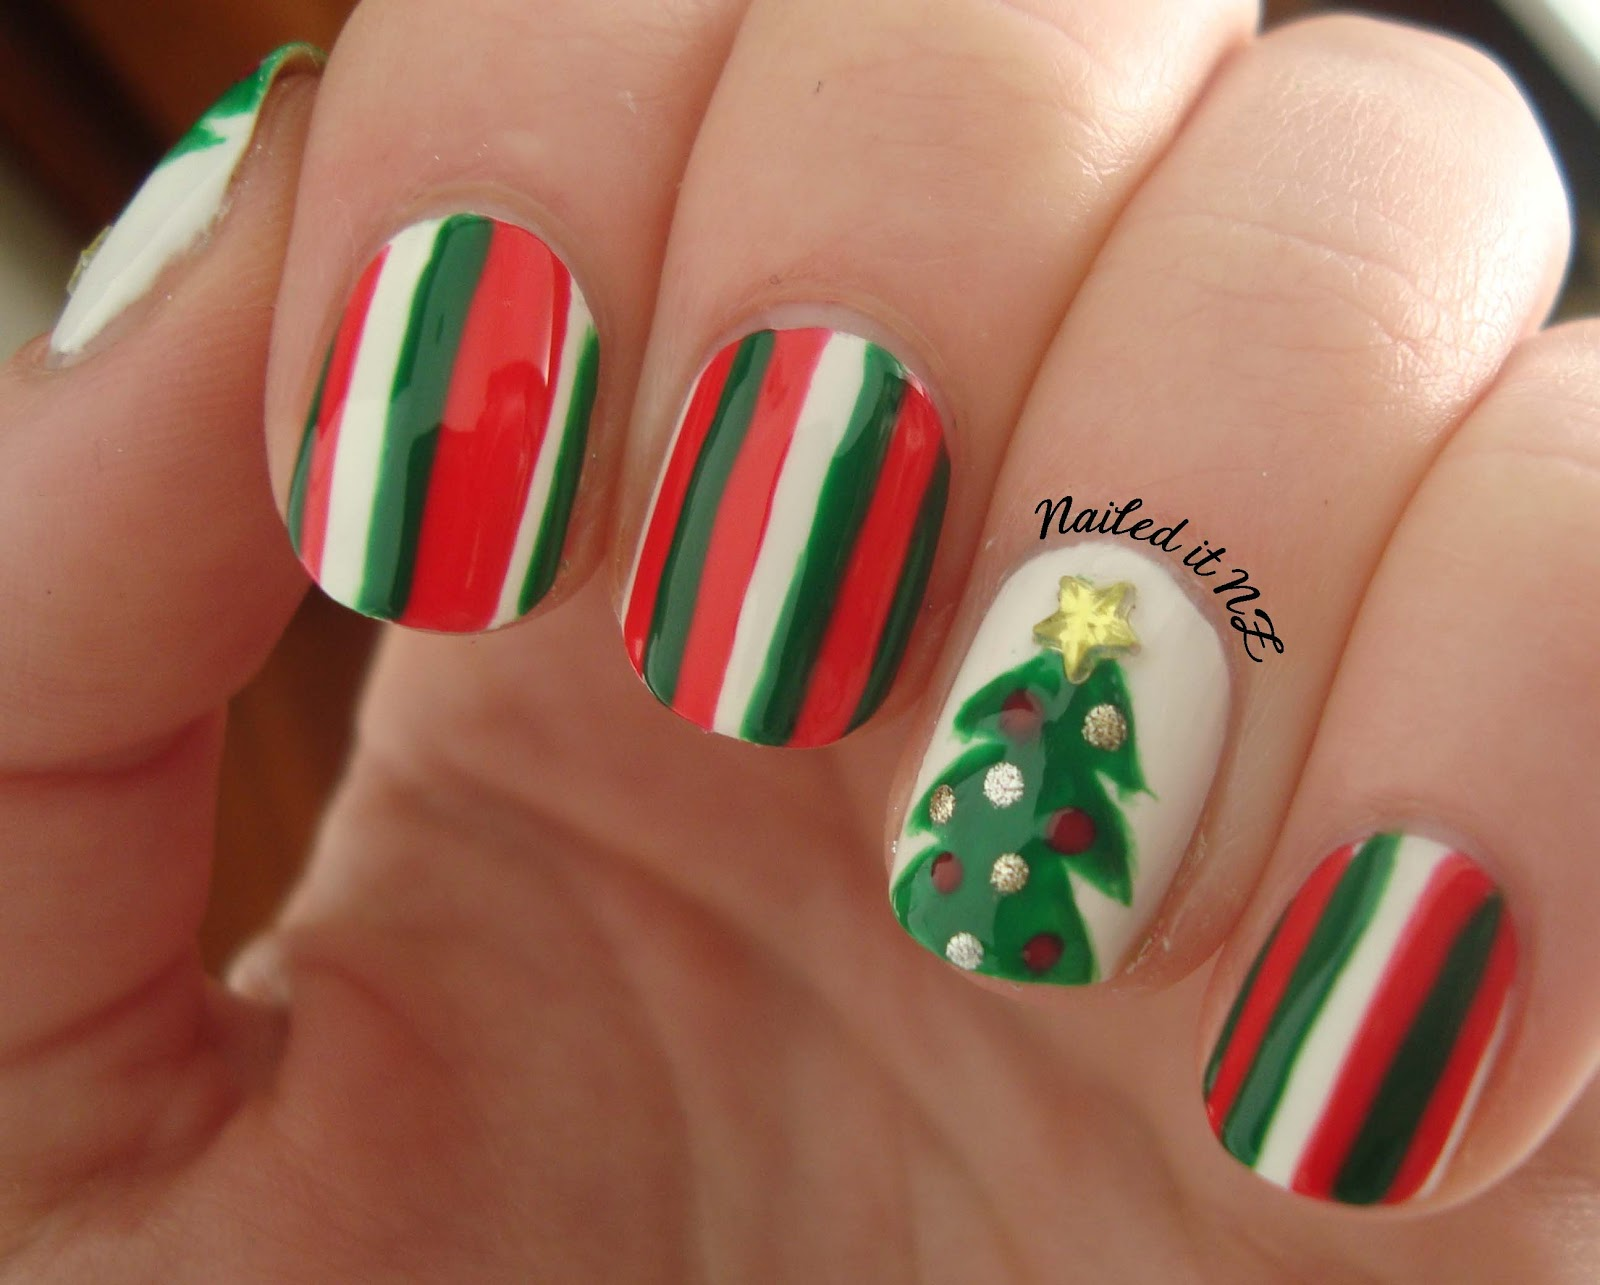 nail art for short nails 4 christmas tree nails